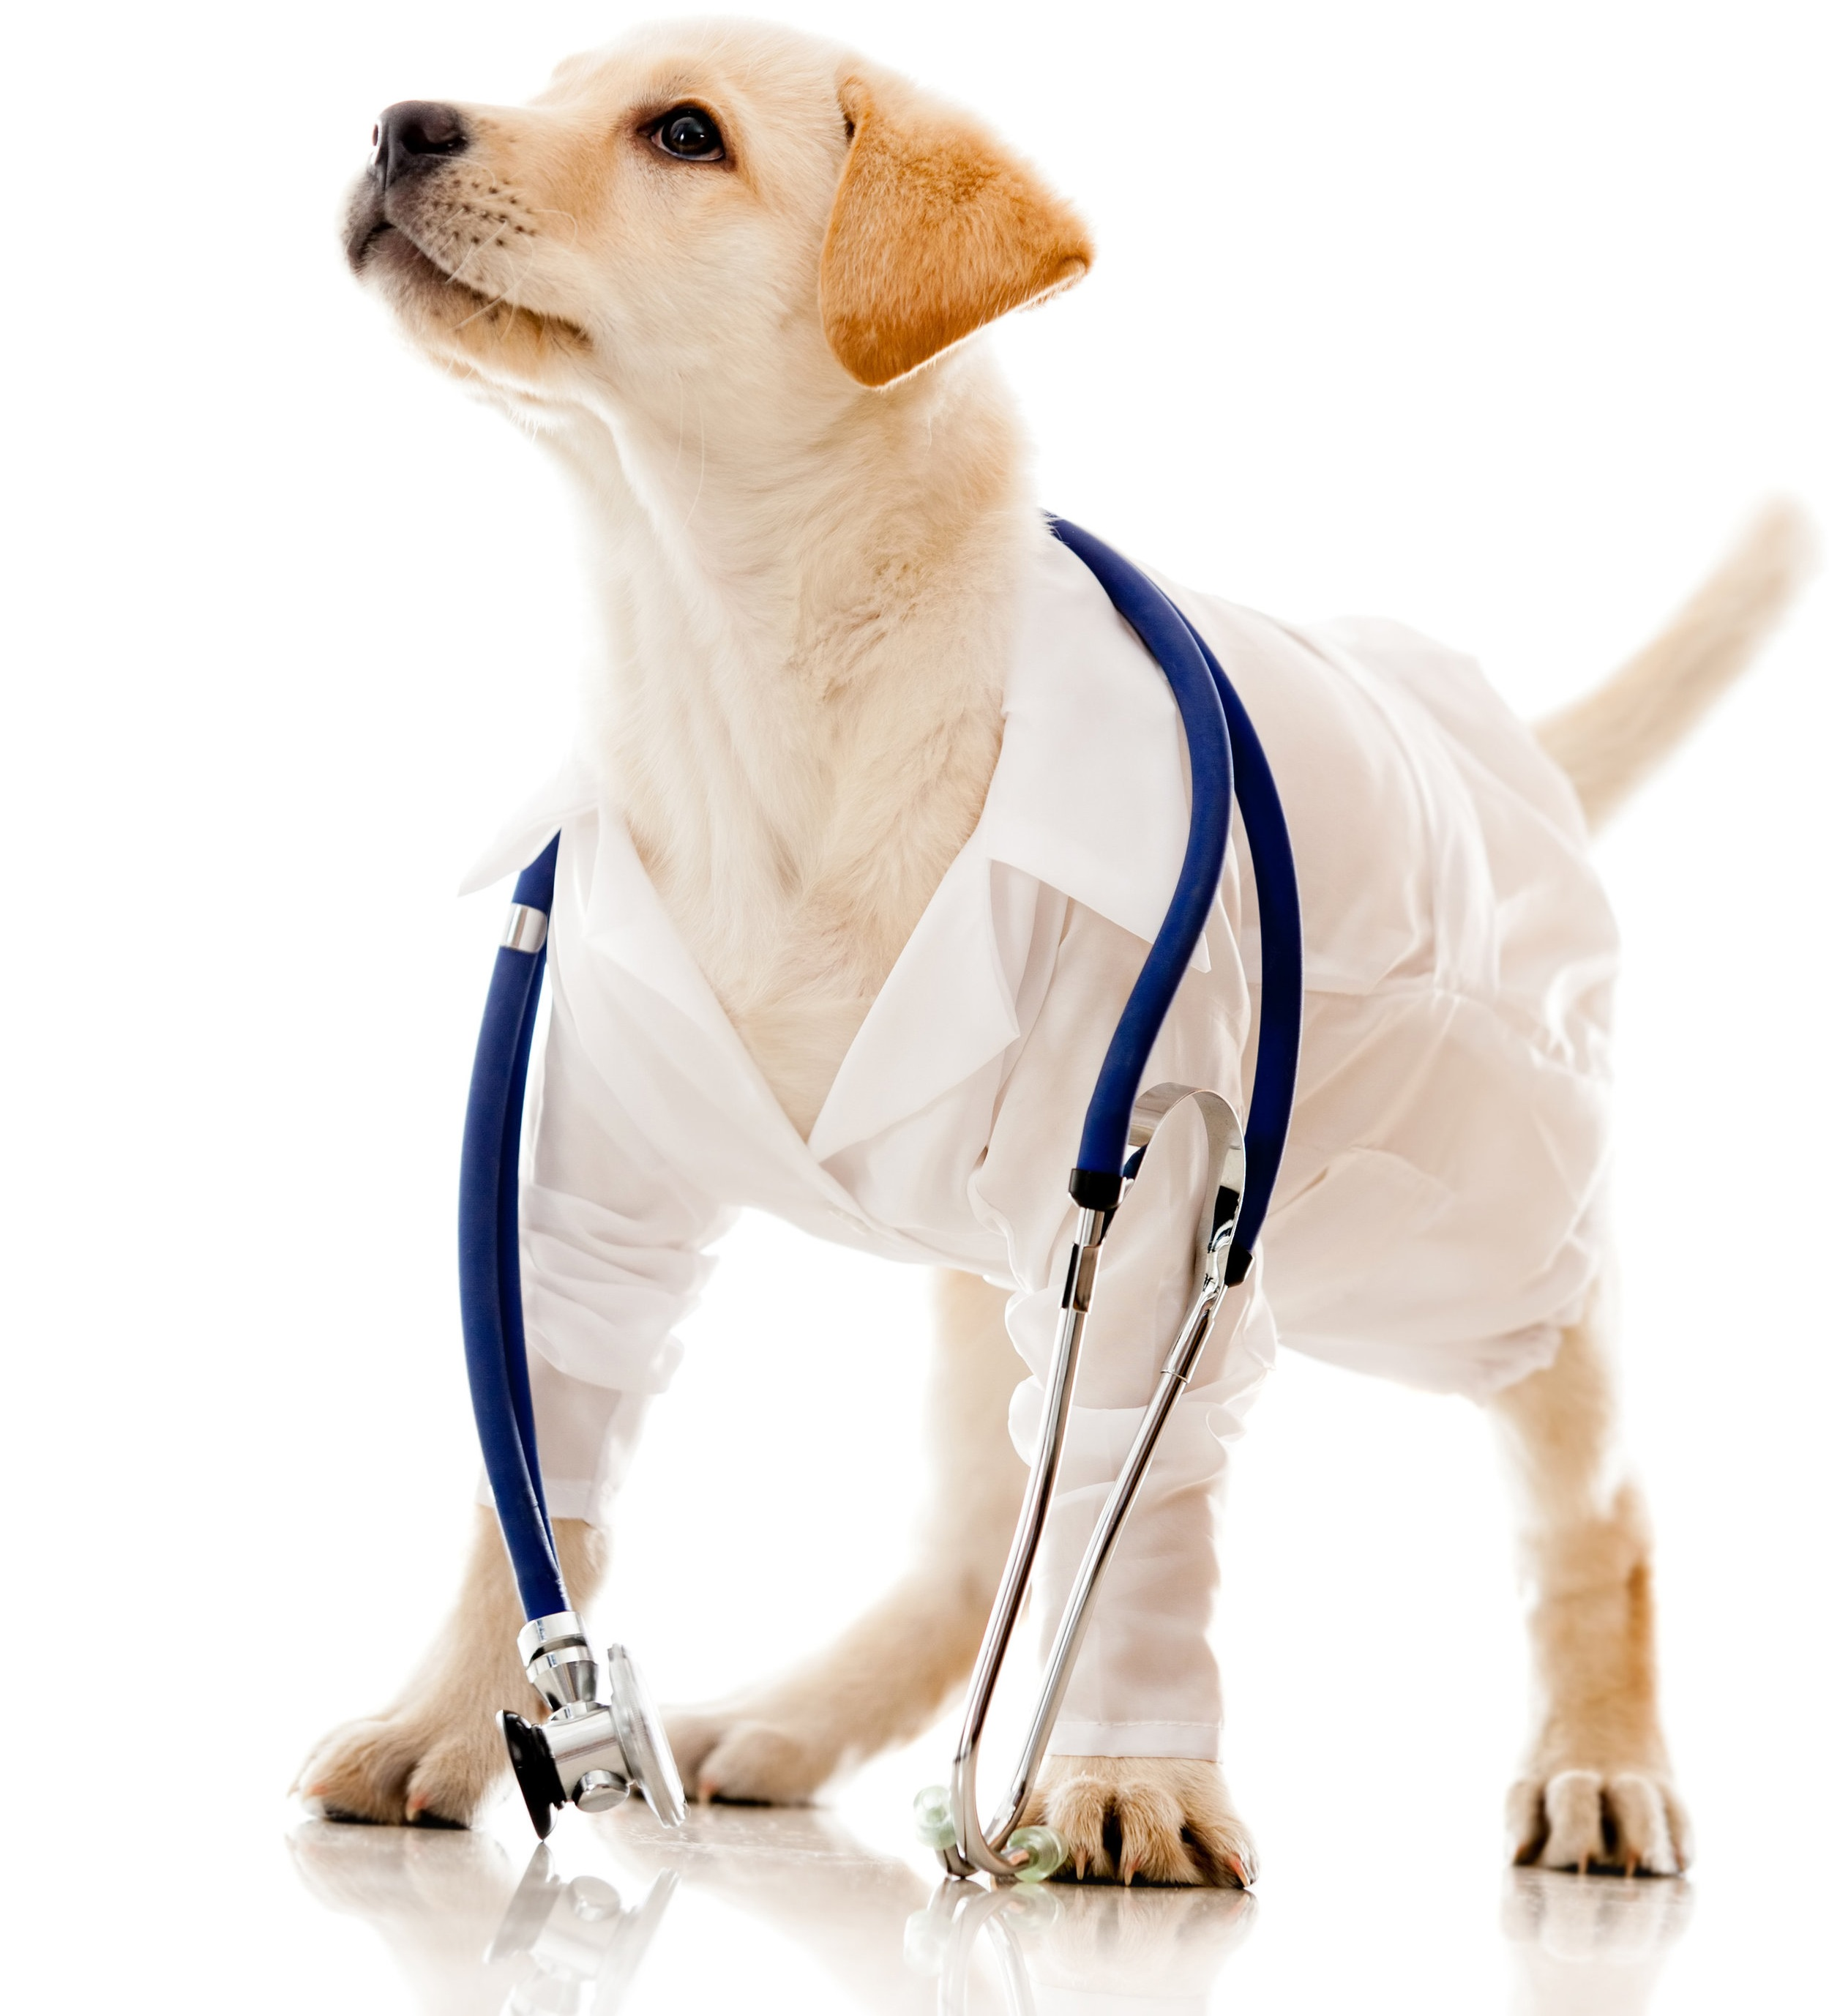 VetTalks™ - FREE ON-SITE CONTINUING EDUCATION FOR TORONTO'S VETERINARIANS AND CLINIC STAFF